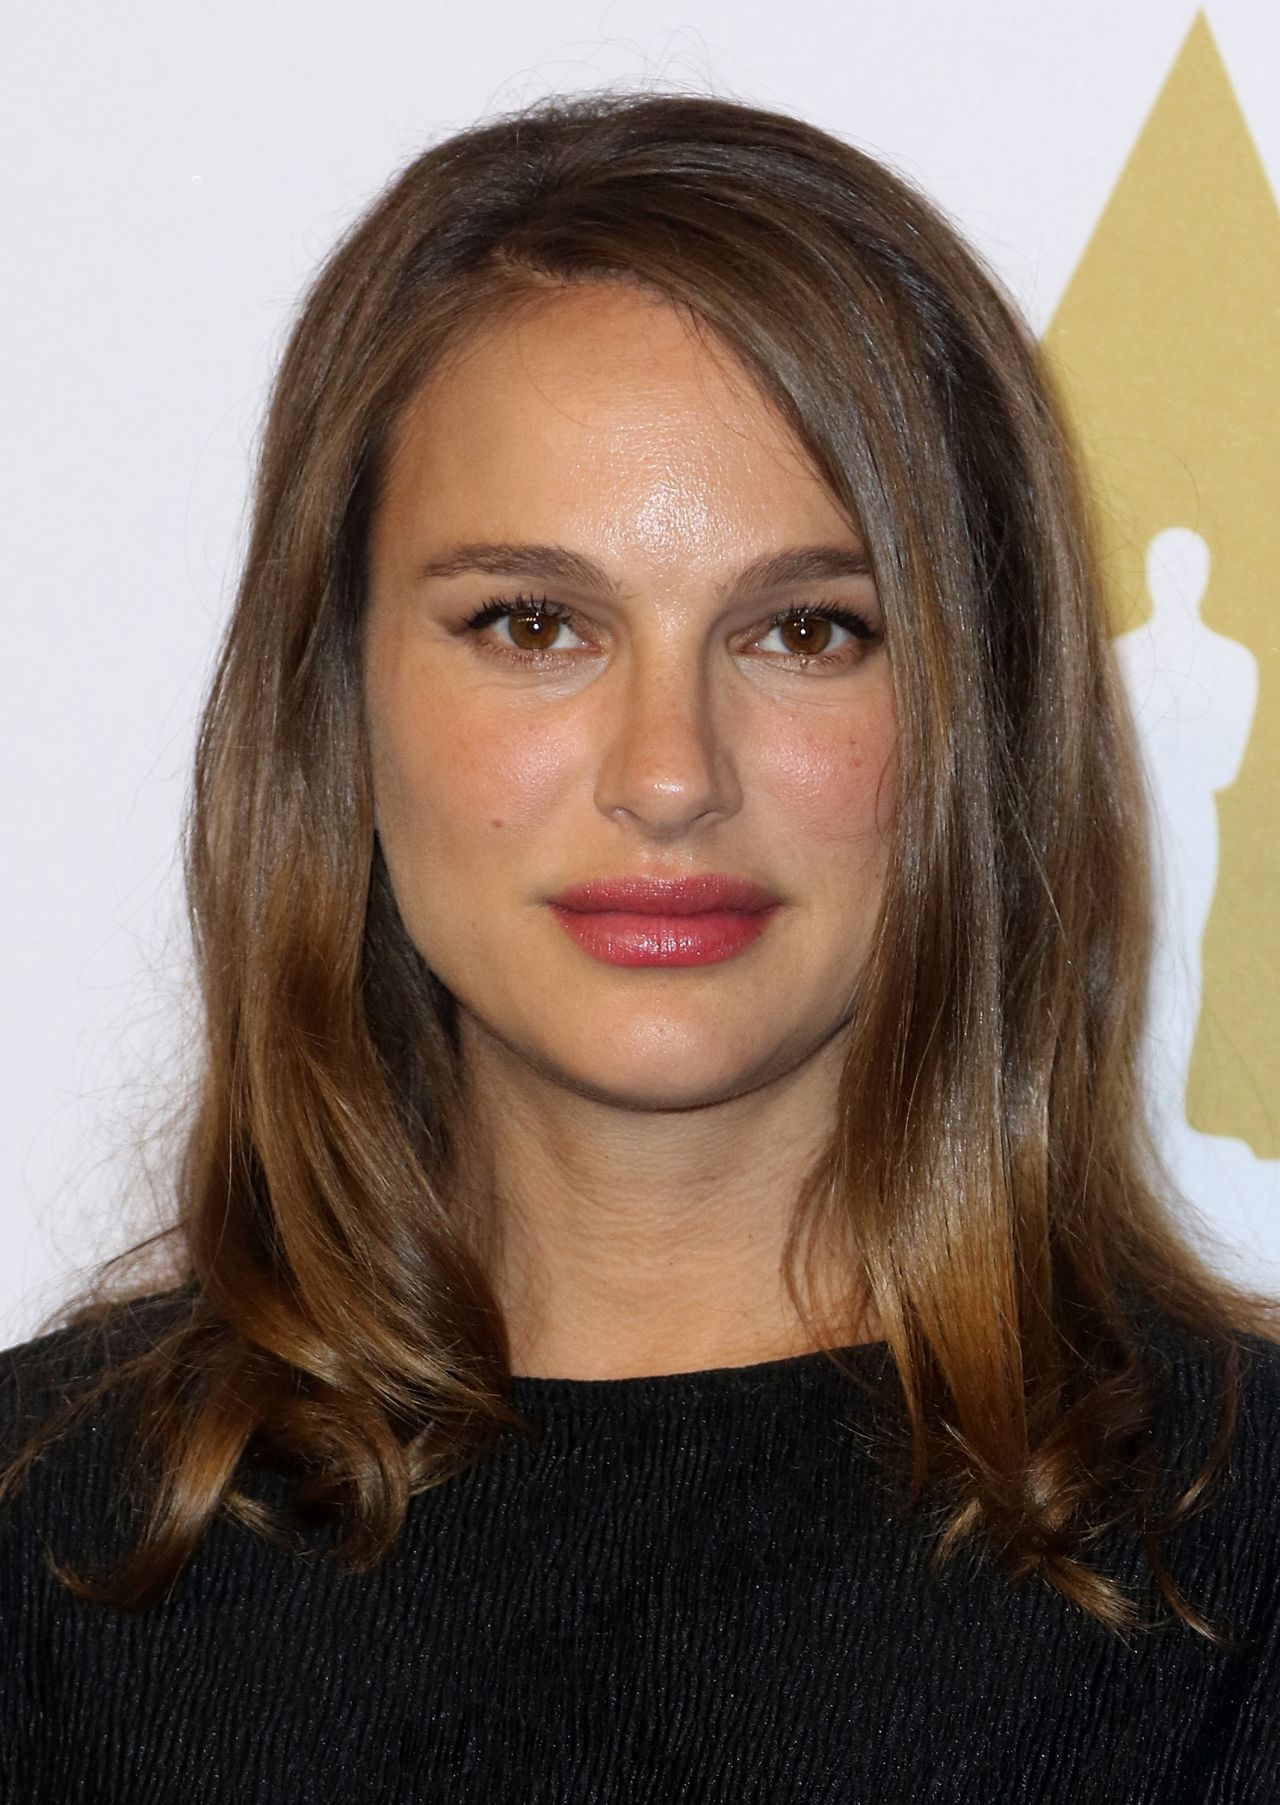 natalie portman - photo #9